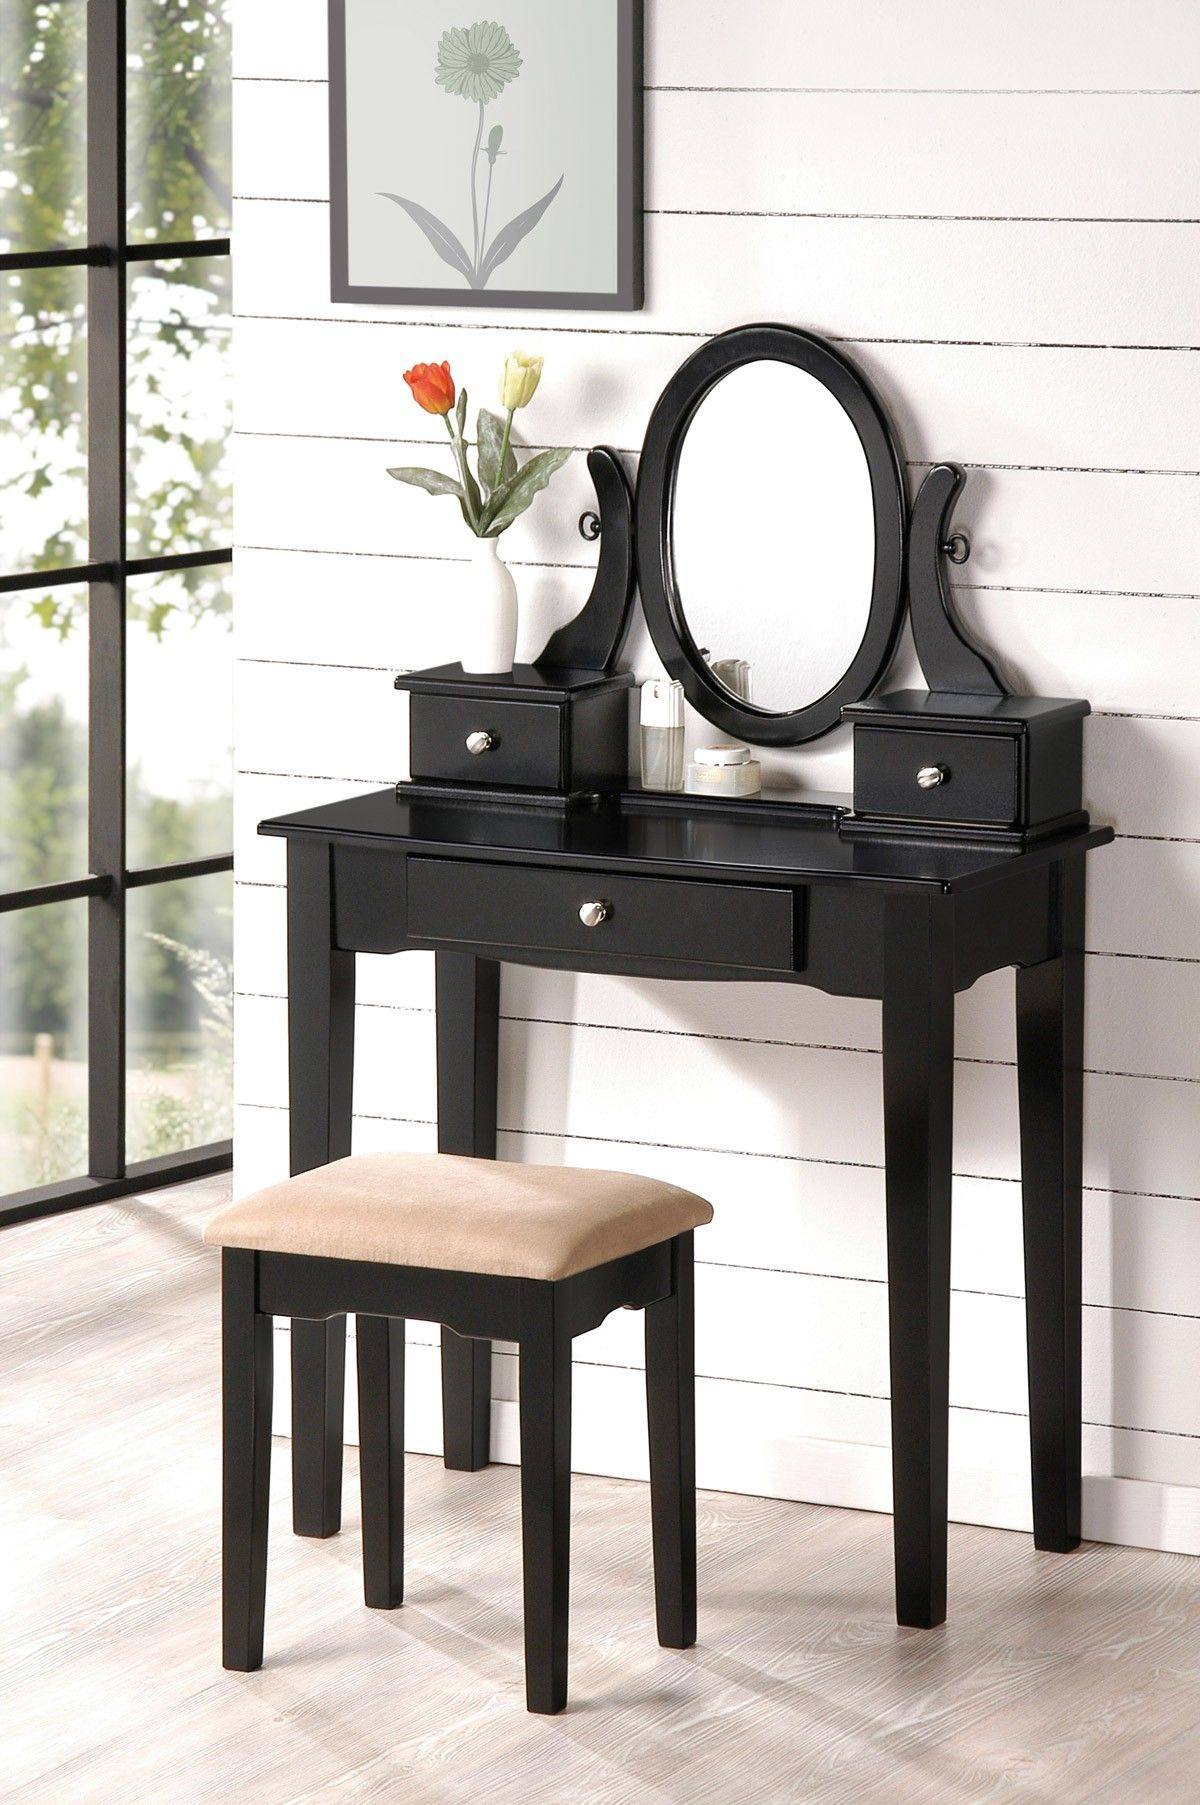 Genial Lovely Oval Mirror Antique Black Vanity Set Make Up Table With 3 Drawers  Bench